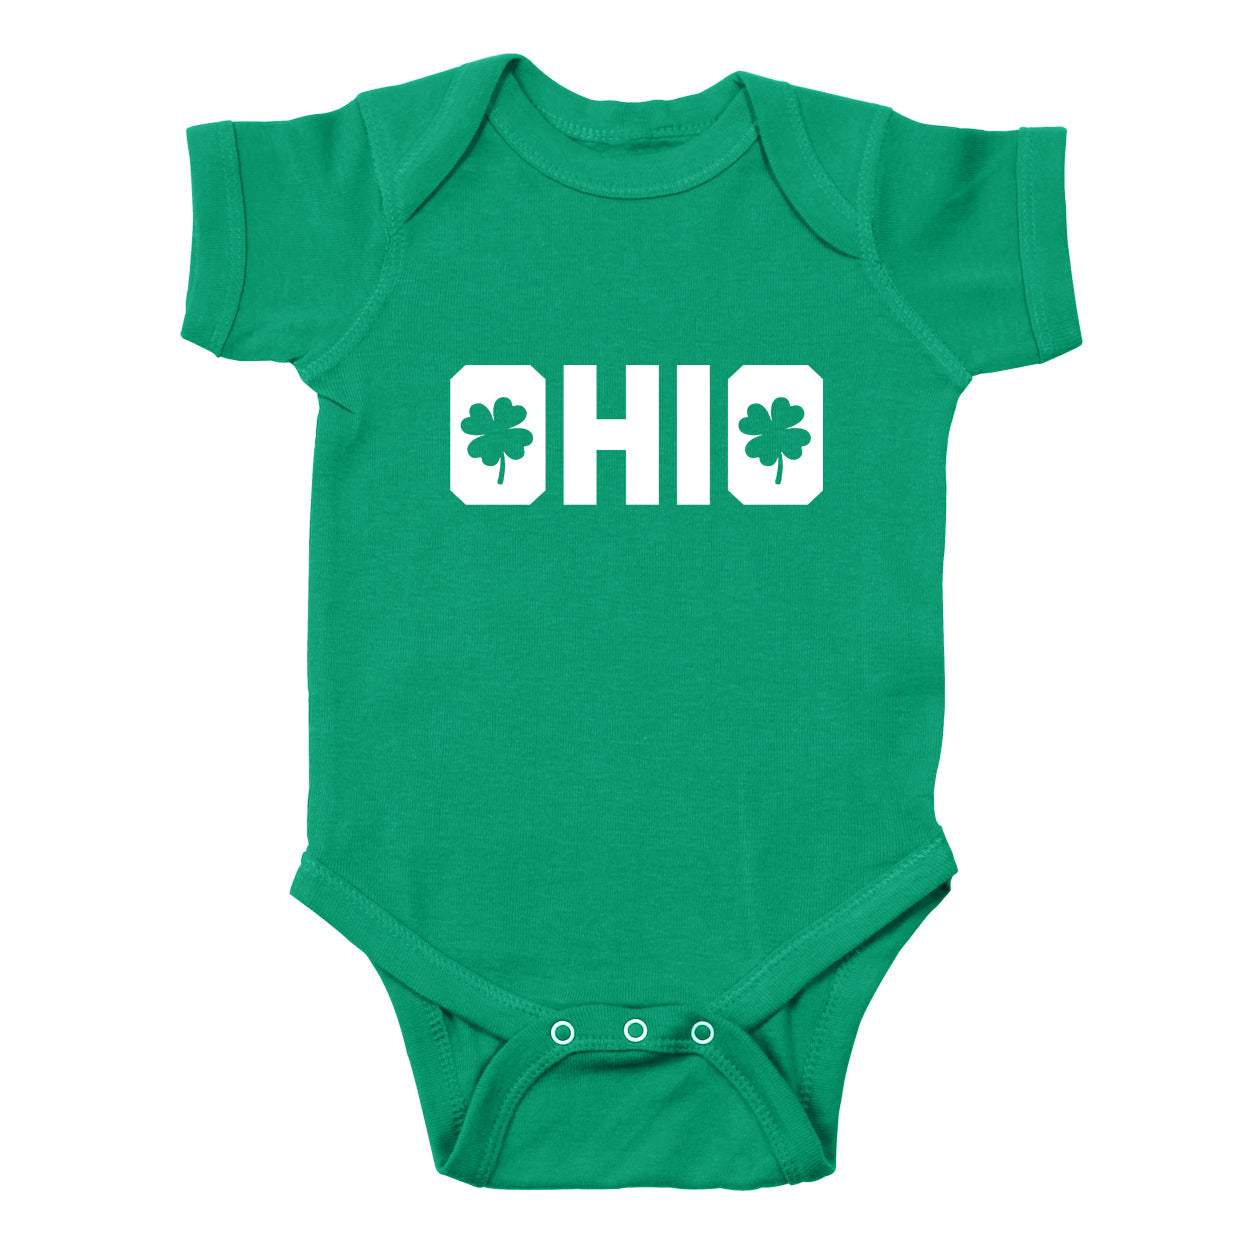 Shamrocks in Ohio Baby One Piece - Clothe Ohio - Soft Ohio Shirts